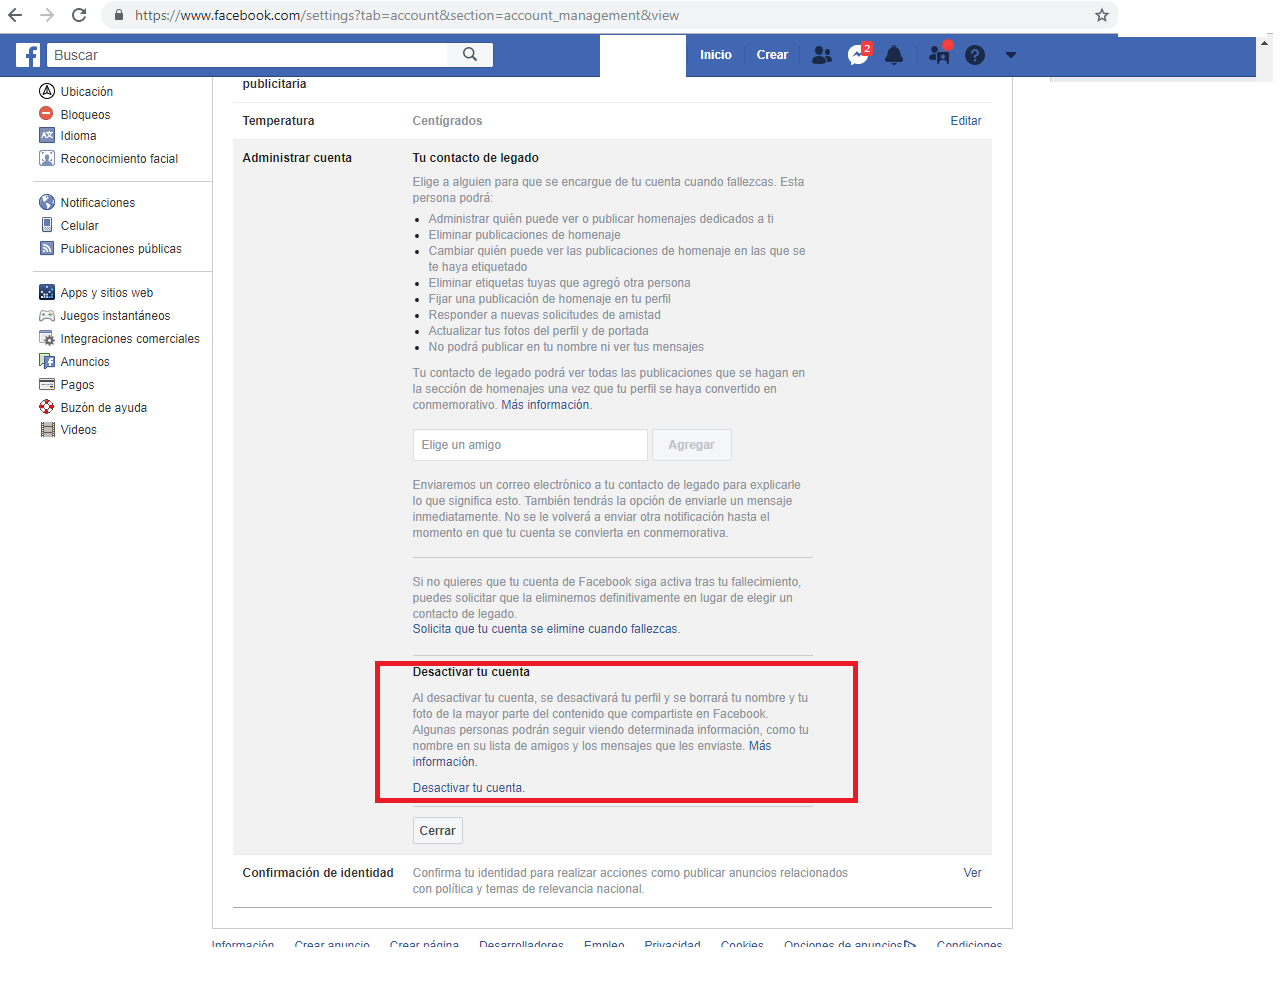 Locate the option to deactivate Facebook account.